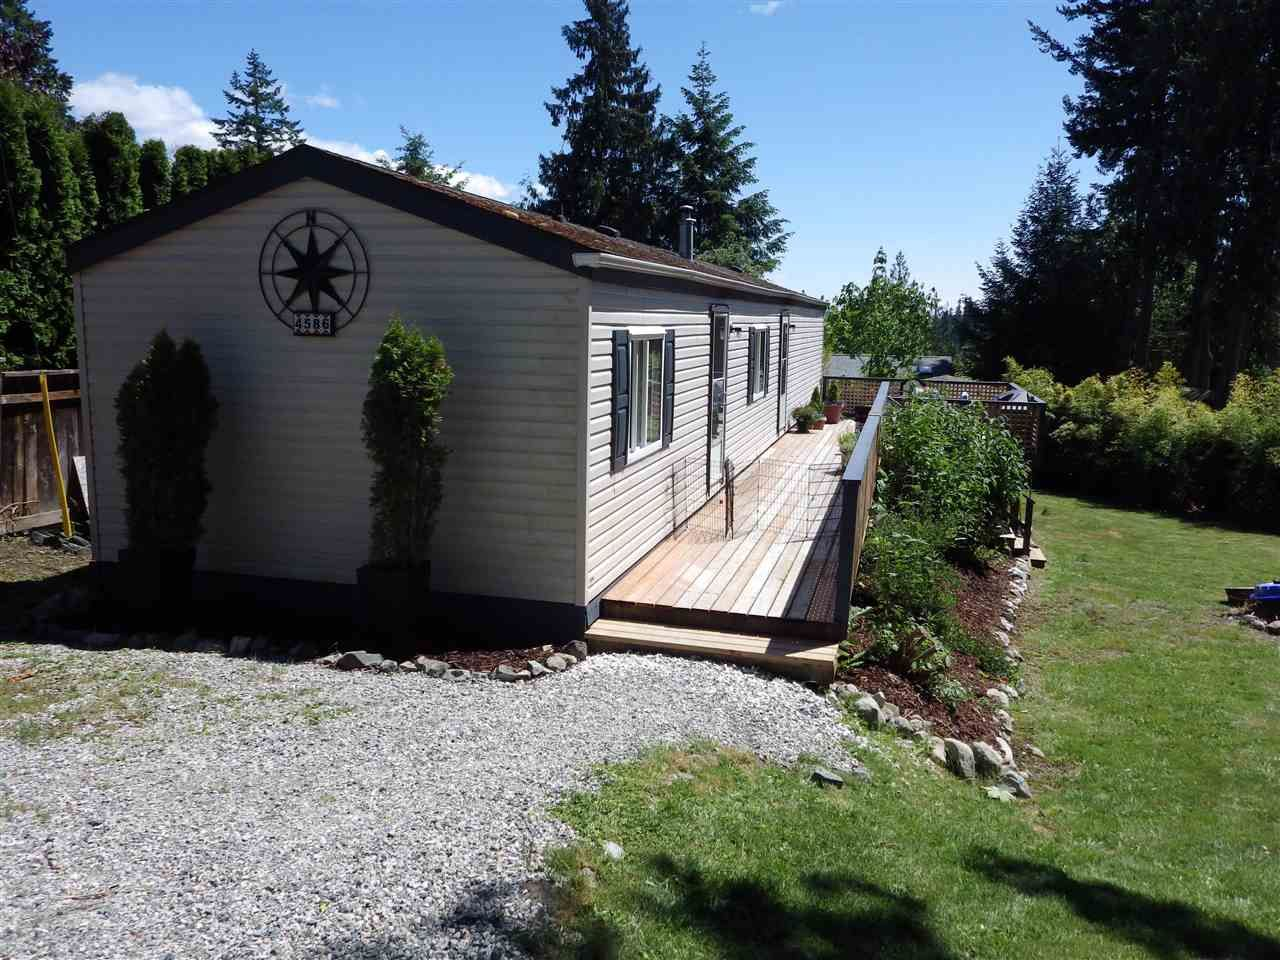 Main Photo: 4586 ESQUIRE Place in Pender Harbour: Pender Harbour Egmont Manufactured Home for sale (Sunshine Coast)  : MLS®# R2586620